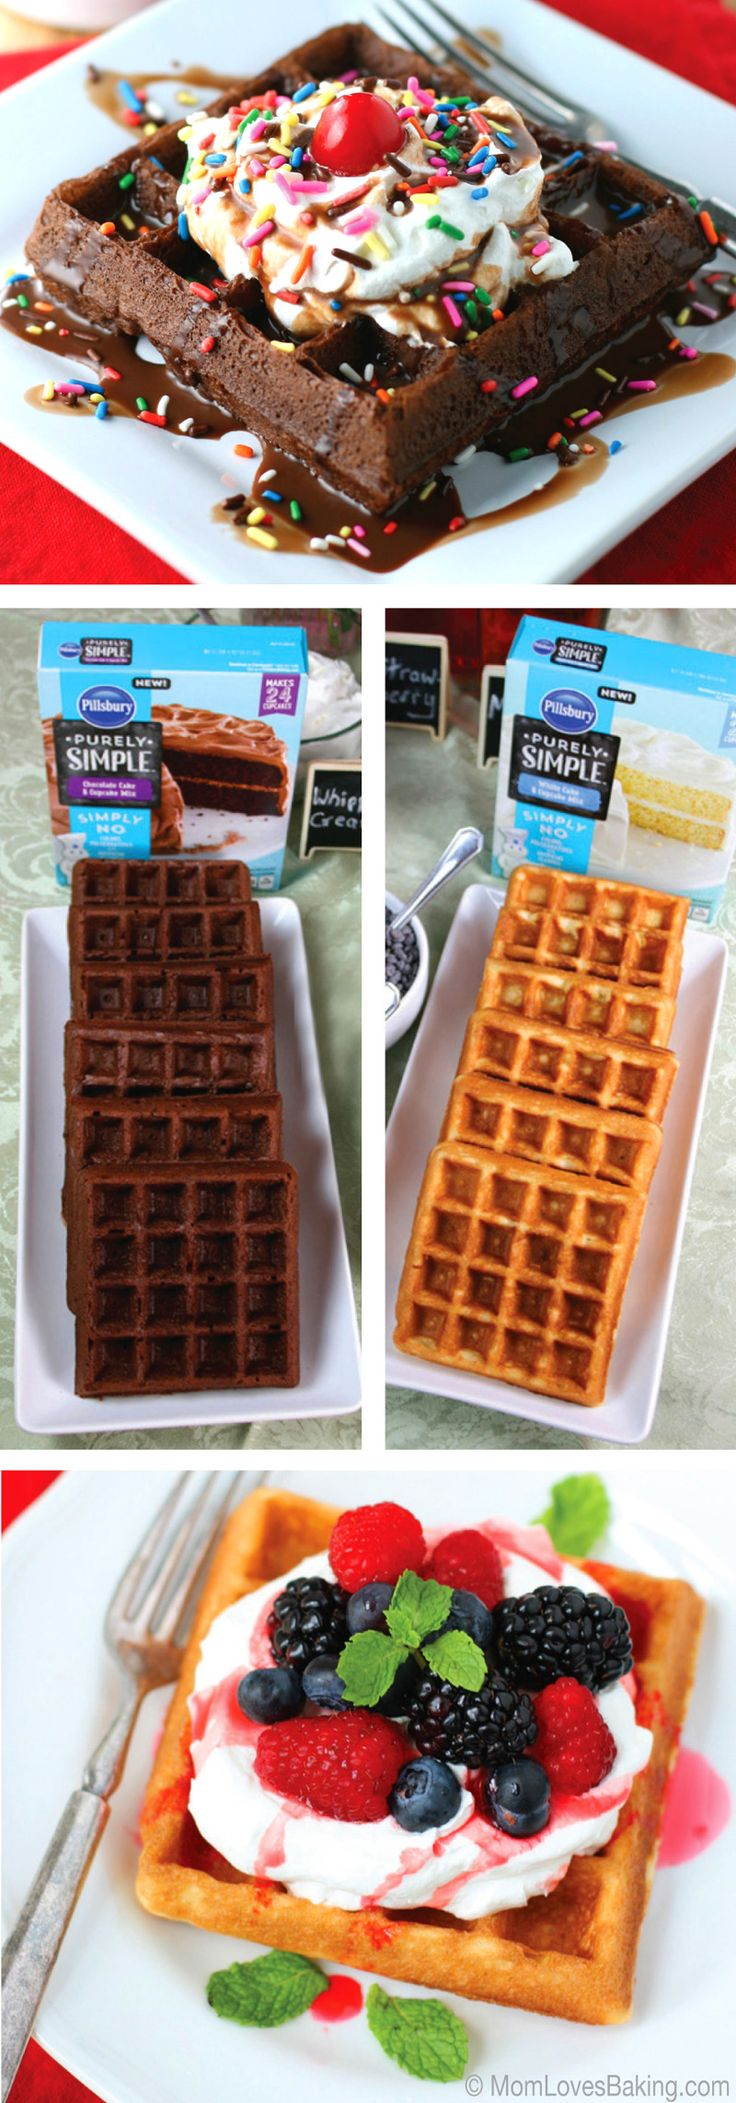 """Did you know that you can make AH-MAZING waffles using cake mix? @momlovesbaking used Pillsbury Purely Simple Chocolate Cake Mix to make these scrumptious """"hot fudge sundae"""" Cake Mix Waffles!"""